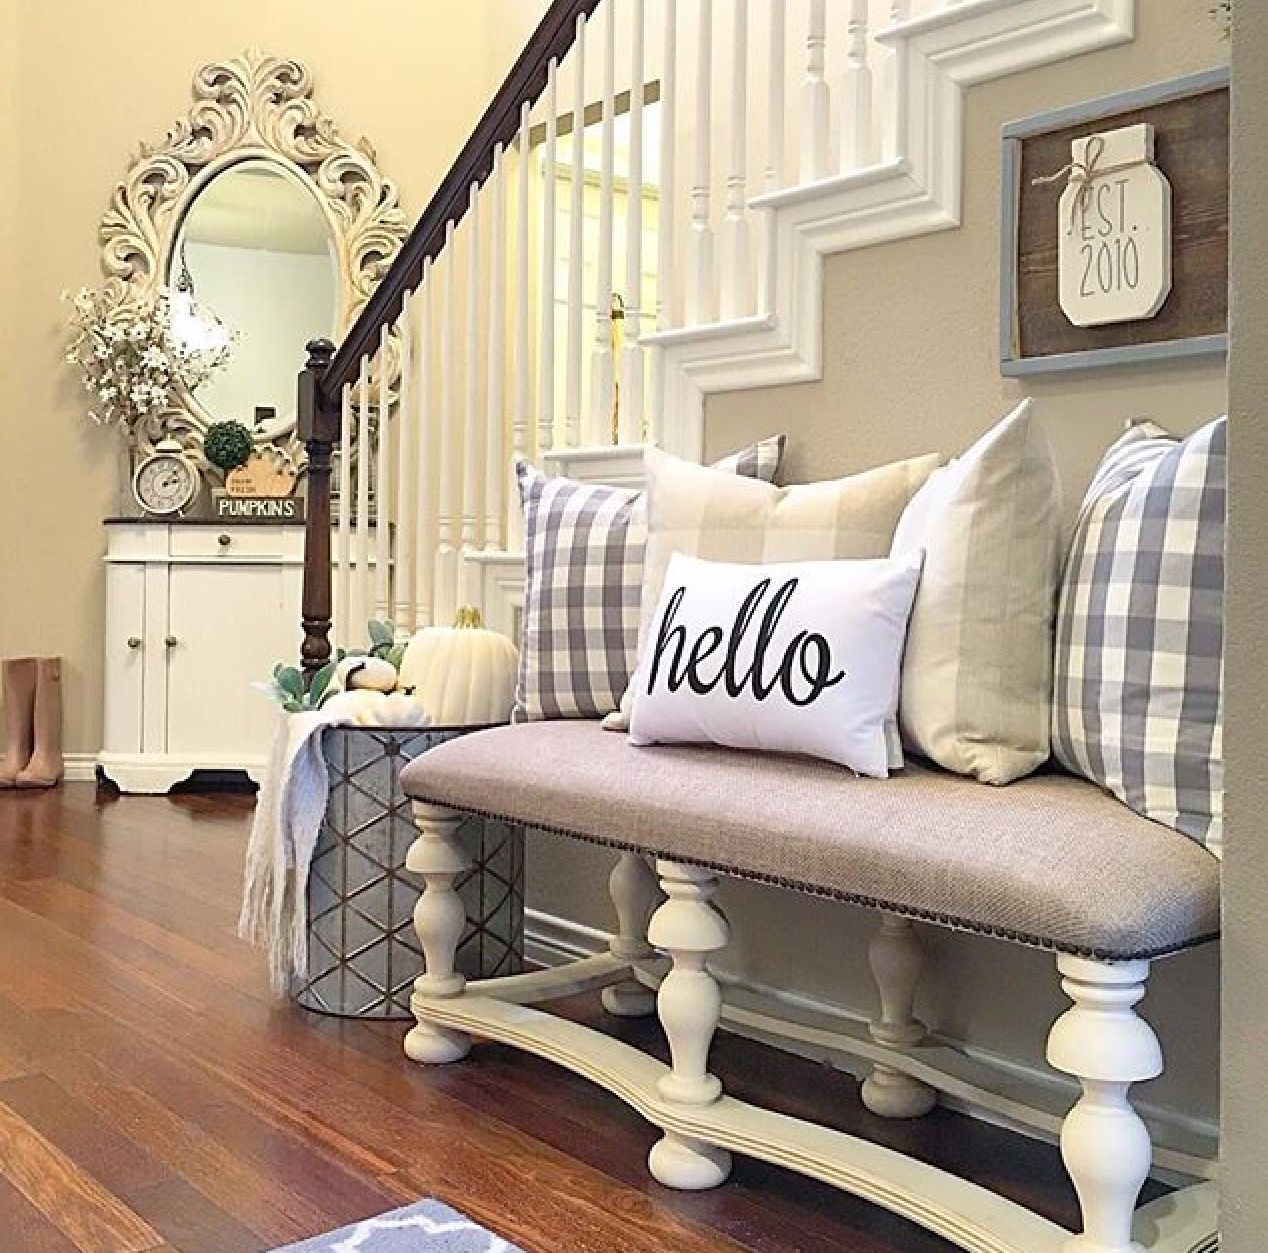 Home Entrance Decor: Decorating Ideas/Furniture